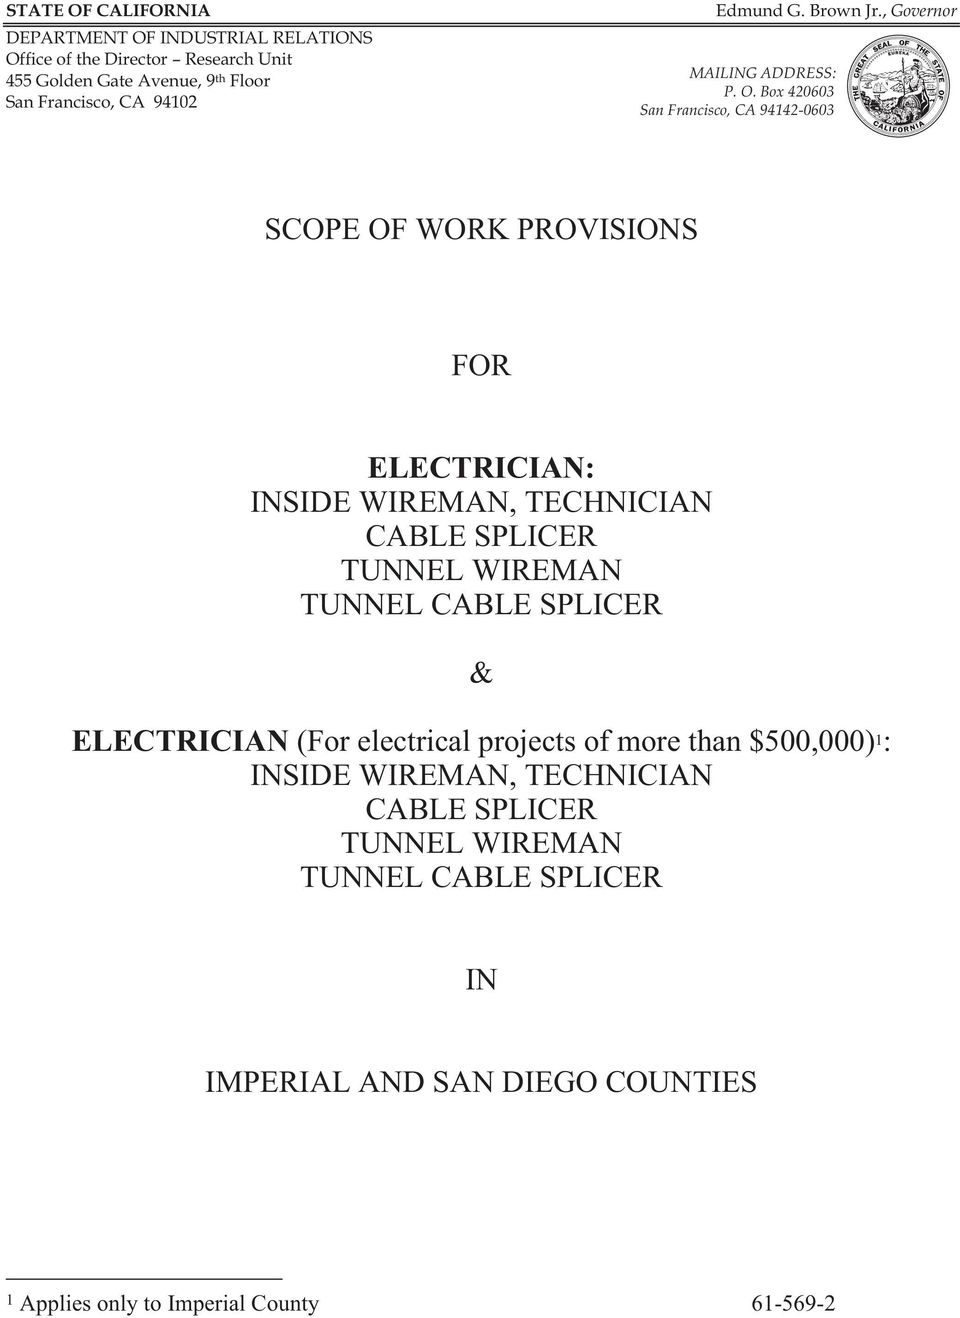 Box 420603 San Francisco, CA 94142-0603 SCOPE OF WORK PROVISIONS FOR ELECTRICIAN: INSIDE WIREMAN, TECHNICIAN CABLE SPLICER TUNNEL WIREMAN TUNNEL